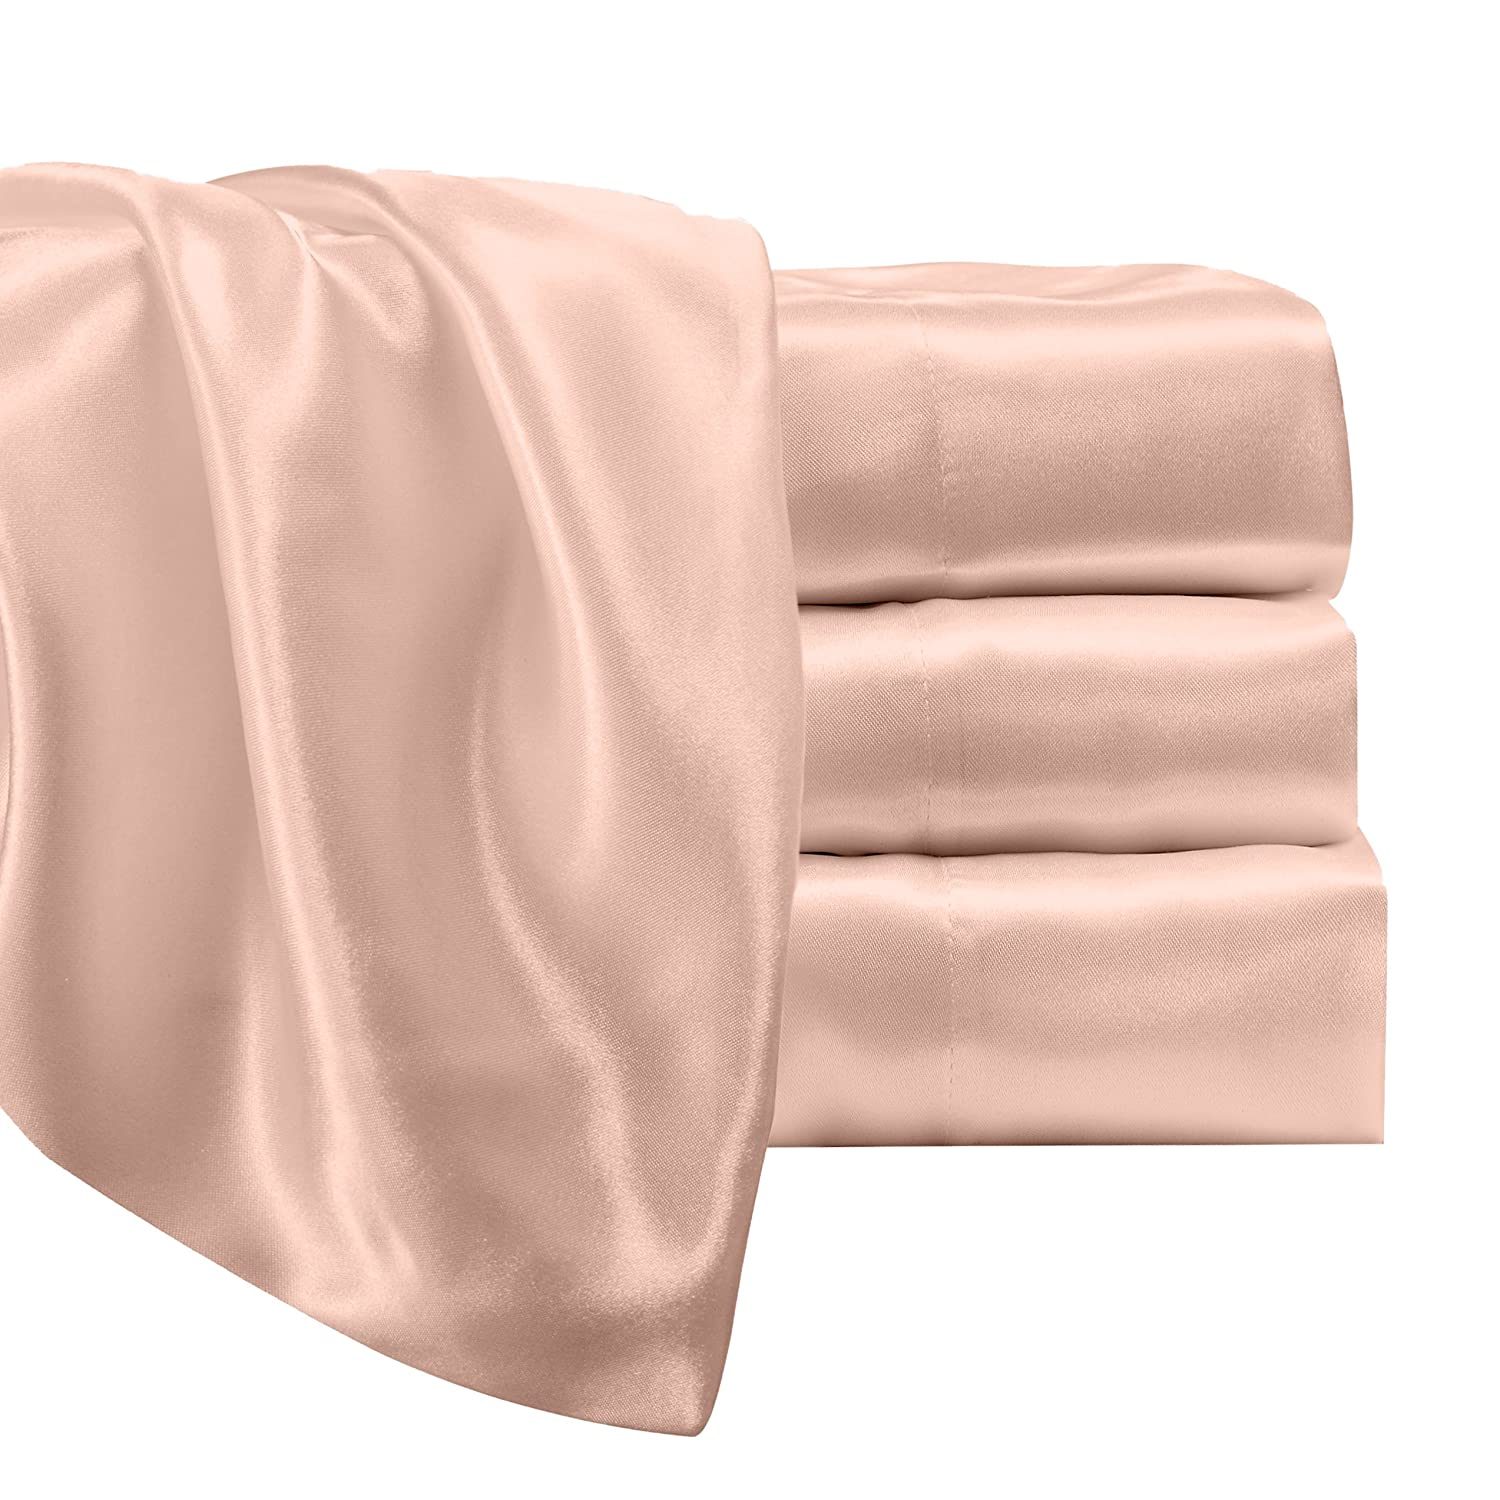 Satin Radiance Luxury Charmeuse Satin Sheet Set with Deep Fitting Pockets Blush Pink 223 3SS 4 Piece Sheet and Pillowcase Set Queen